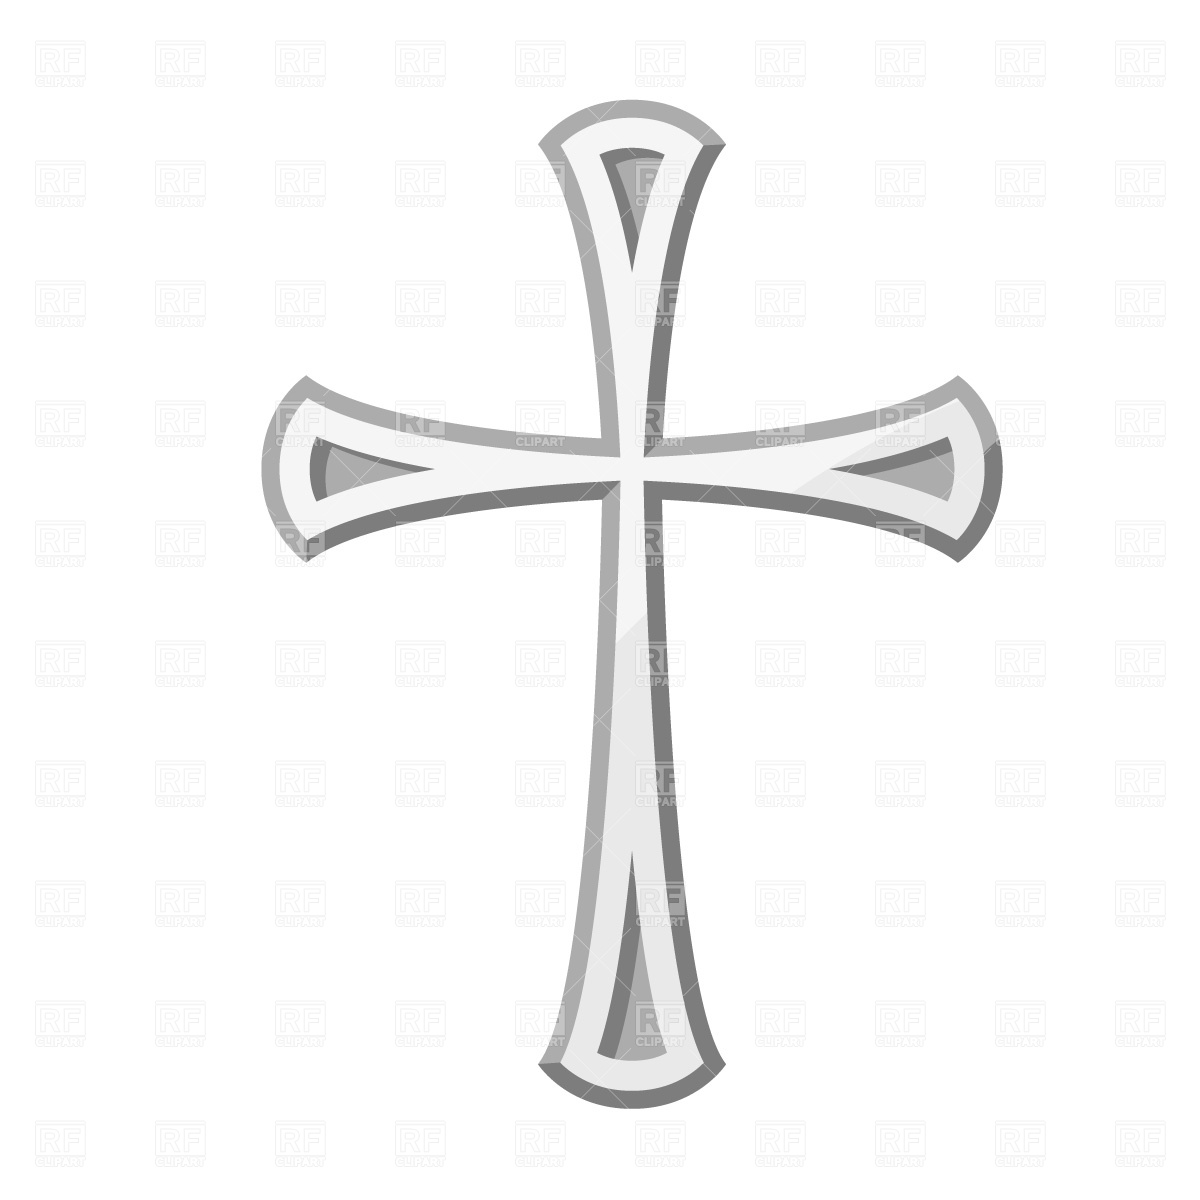 14 free christian vector graphics images free vector for Cross clipart